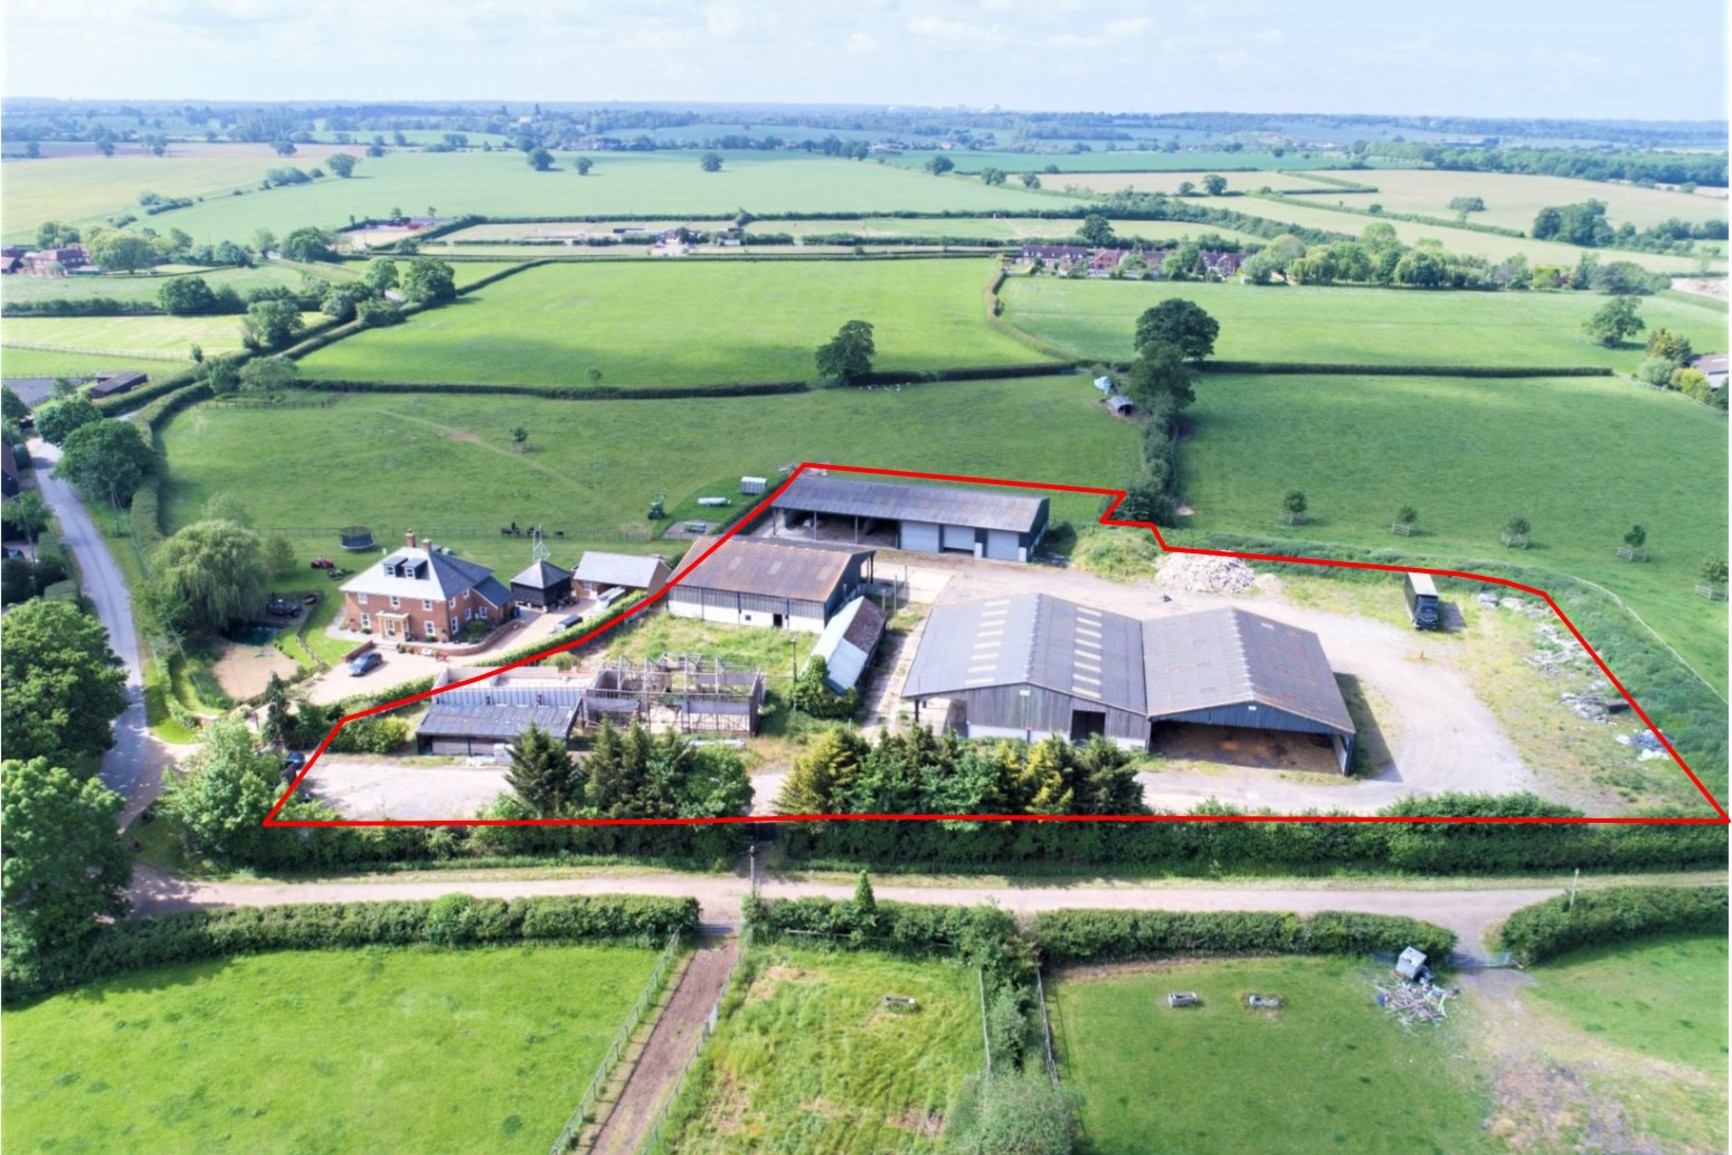 Similar property | BUILDINGS AT CONINGSBY FARM - MAIDENHEAD